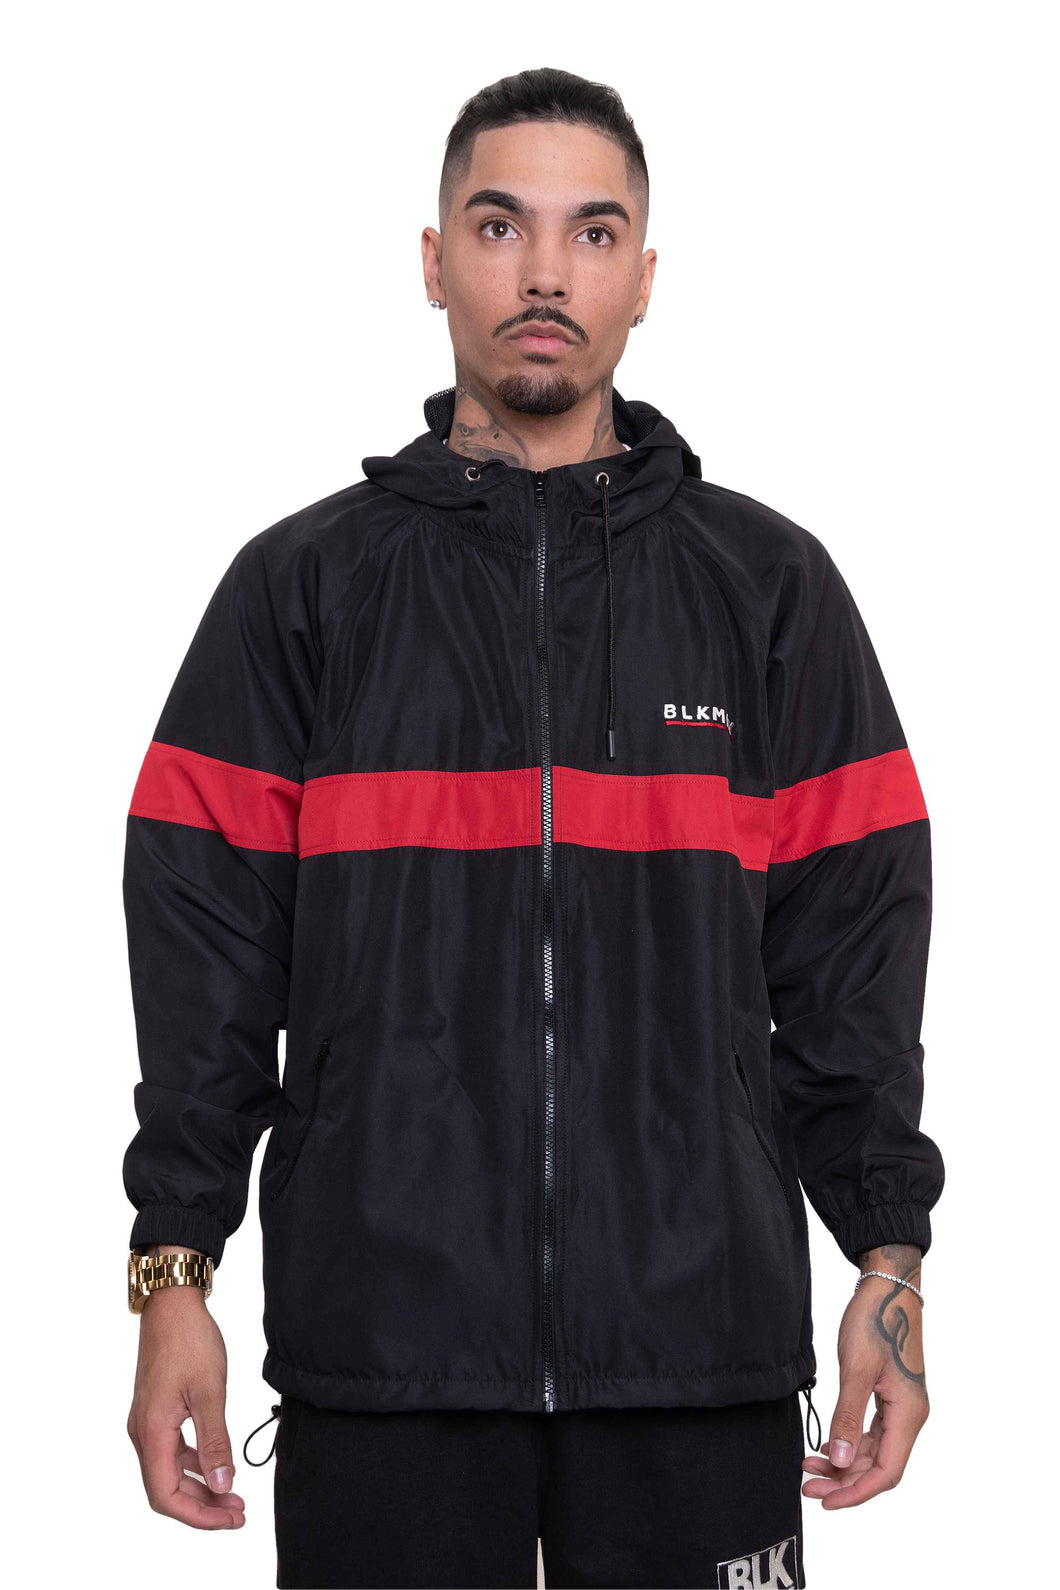 BLK MNY WINDBREATKER - BLACK/RED